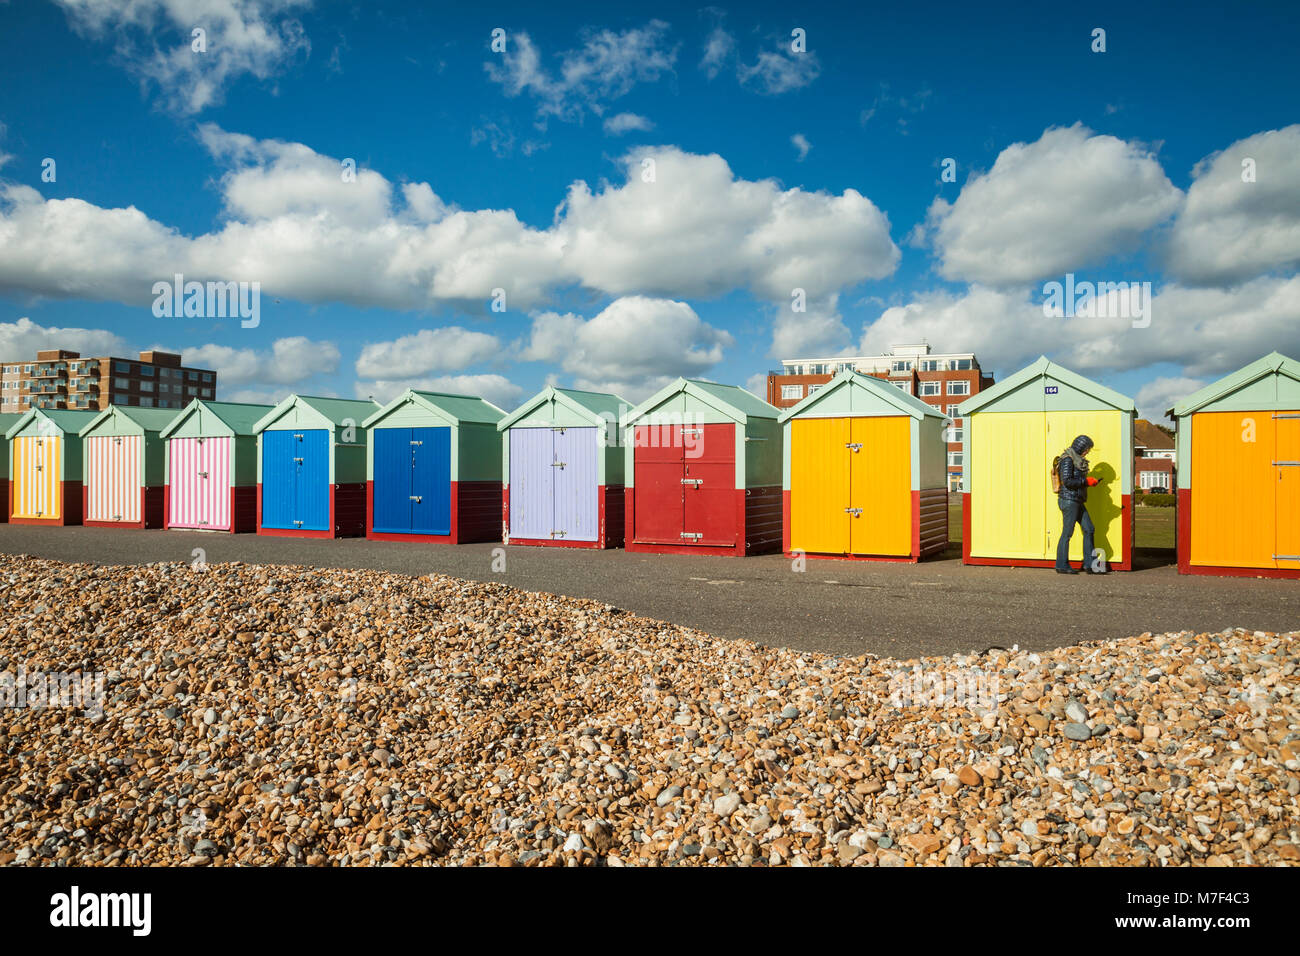 Multi-coloured beach huts on Hove seafront, East Sussex, England. - Stock Image